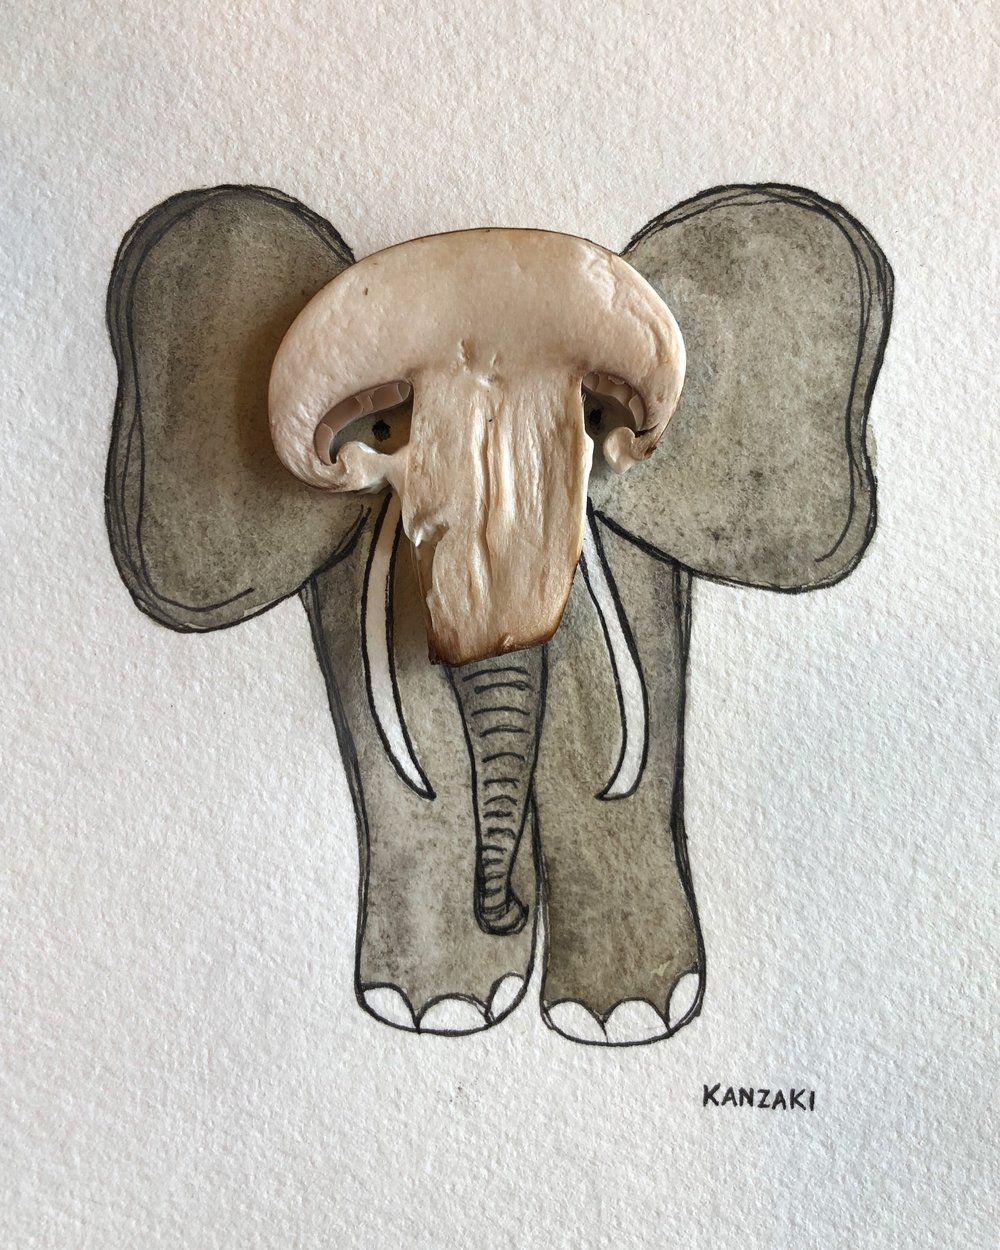 The elephant inspiration hit me as I was slicing mushrooms. This project is training my eye to recognize the magic in the ordinary- which I'm certain is a skill that can transfer to other areas of work and writing and projects.... #100daysofthekanzakimethodfood #Day15of100